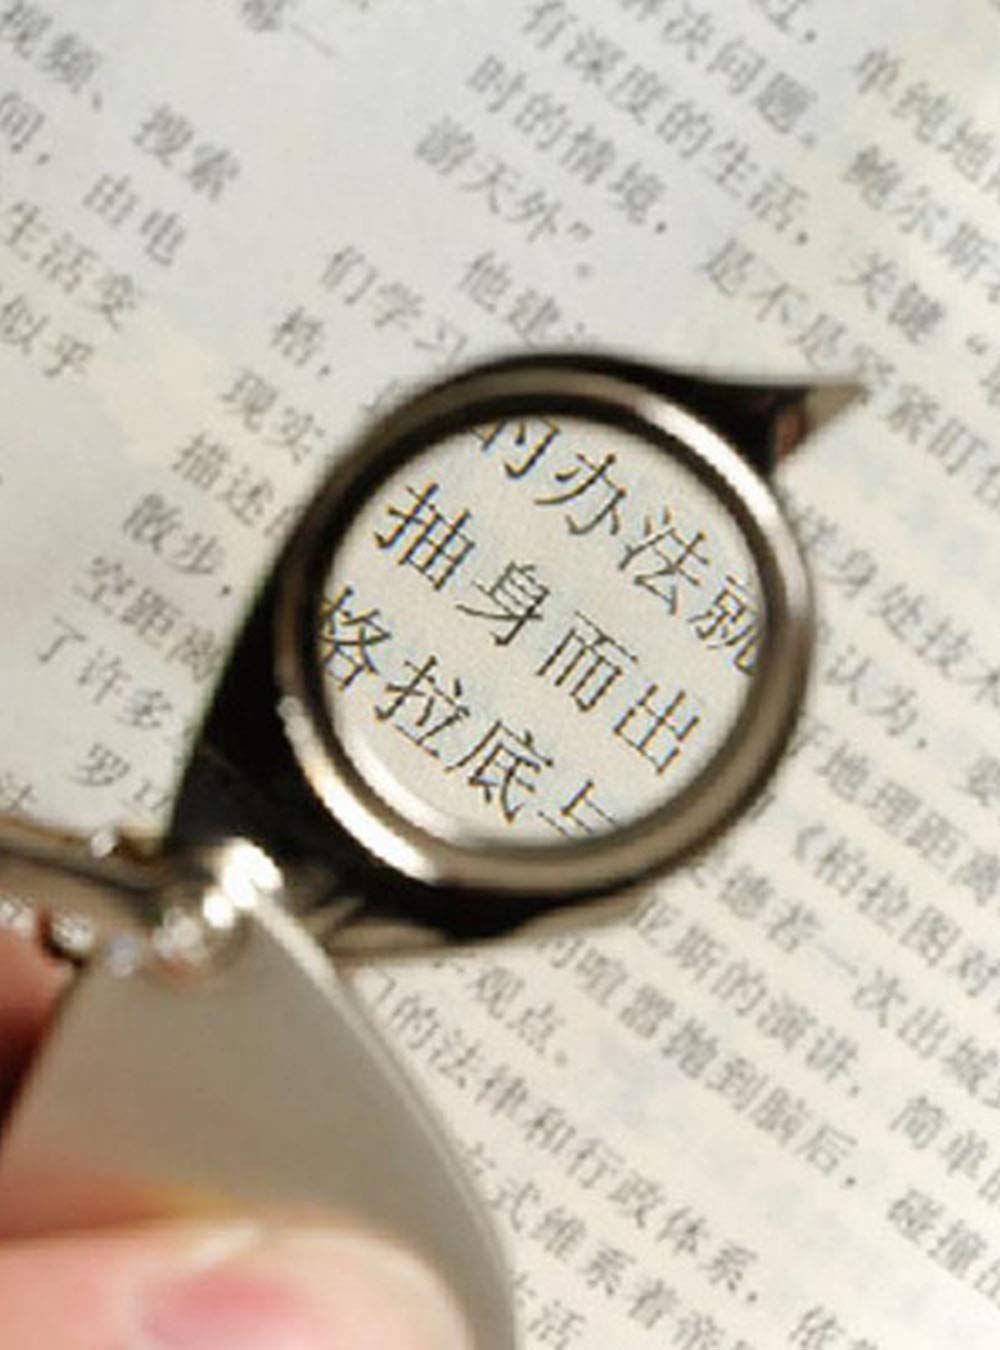 Snowmanna-15x Foldable Pocket Eye Loupe Magnifier Magnifying Glass with Keychain for Coin Jewelry Diamond Jeweler Gem